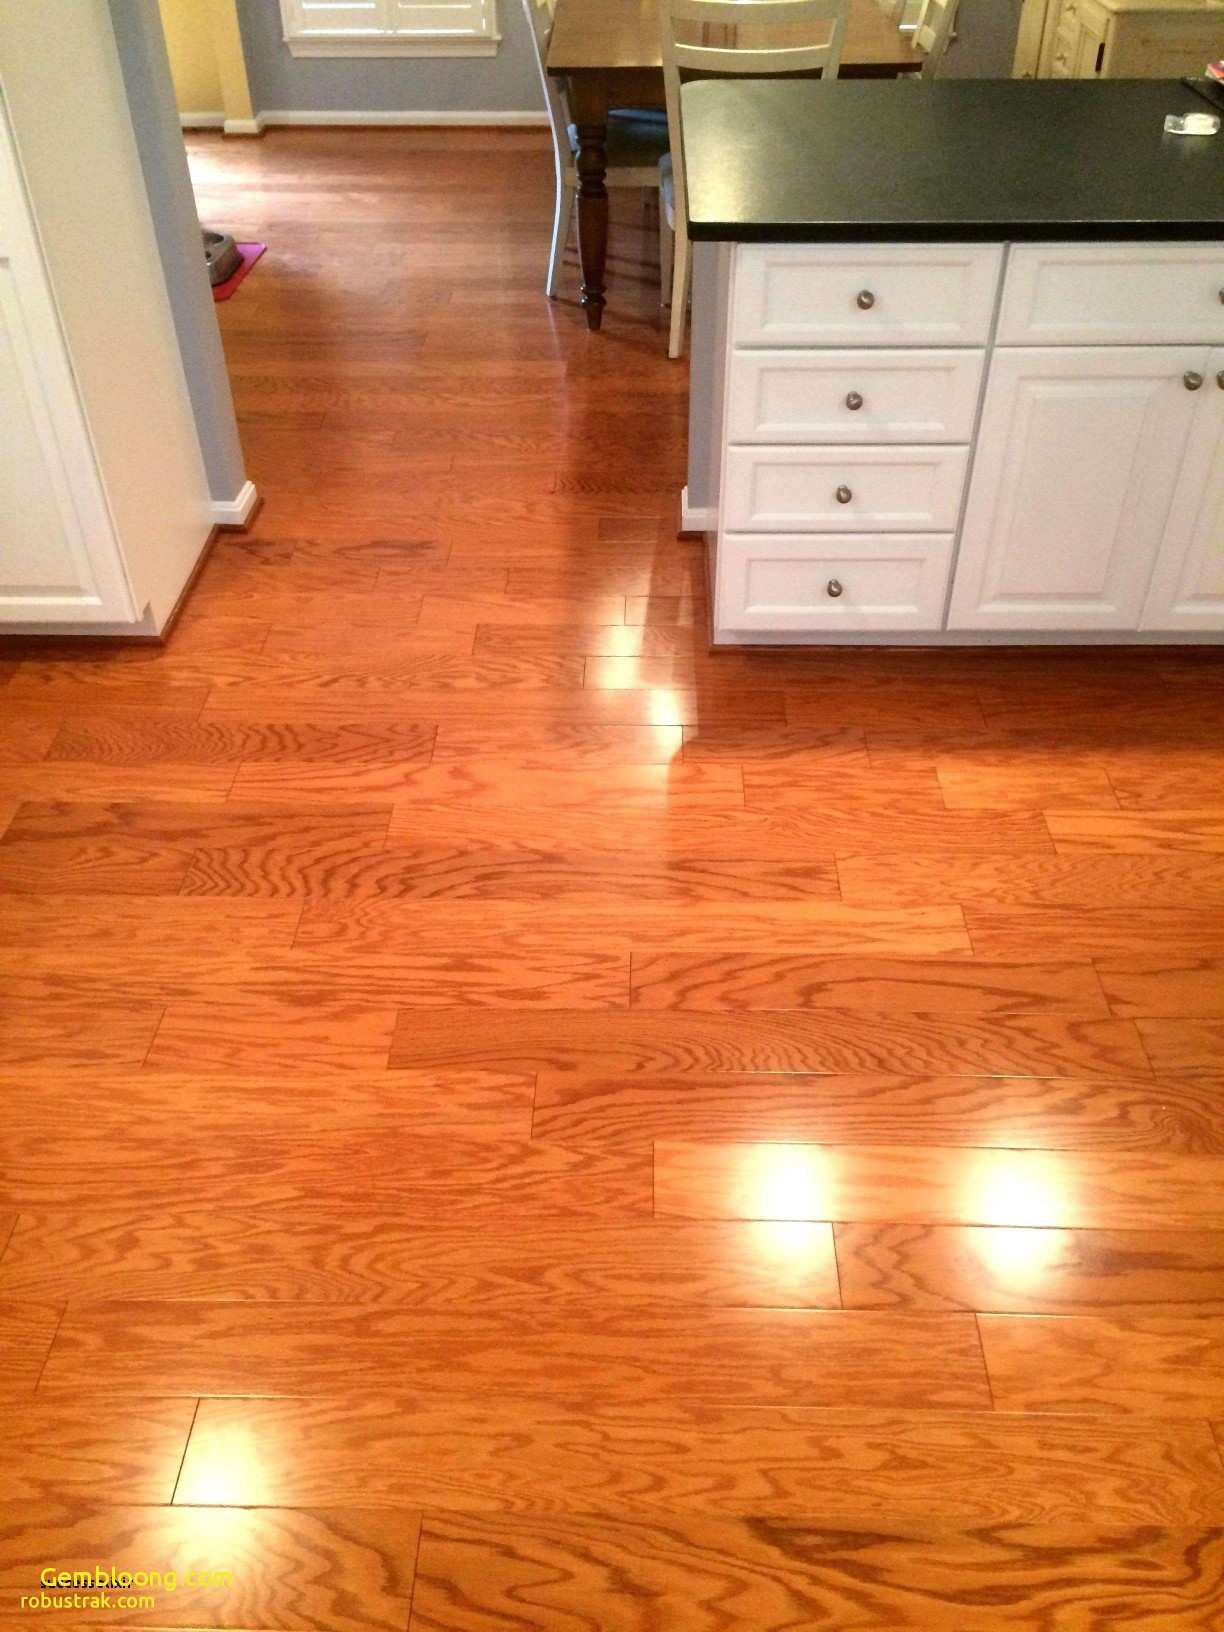 clearance hardwood flooring sale of wood for floors facesinnature intended for hardwood floors in the kitchen fresh where to buy hardwood flooring inspirational 0d grace place barnegat